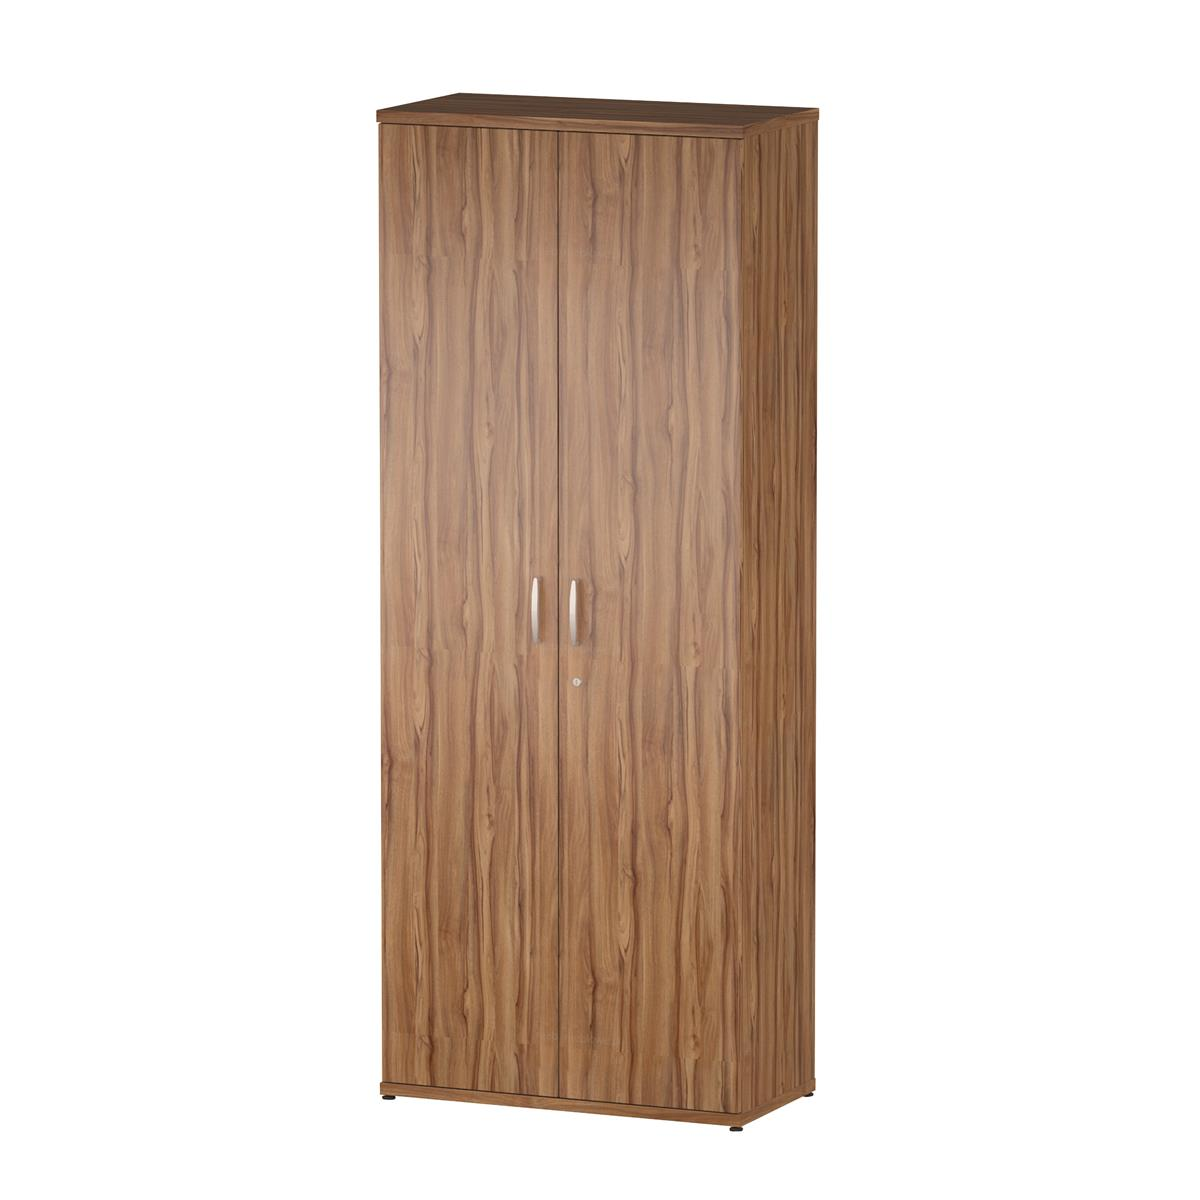 Trexus Office Cupboard 800mm 4 Shelves Walnut